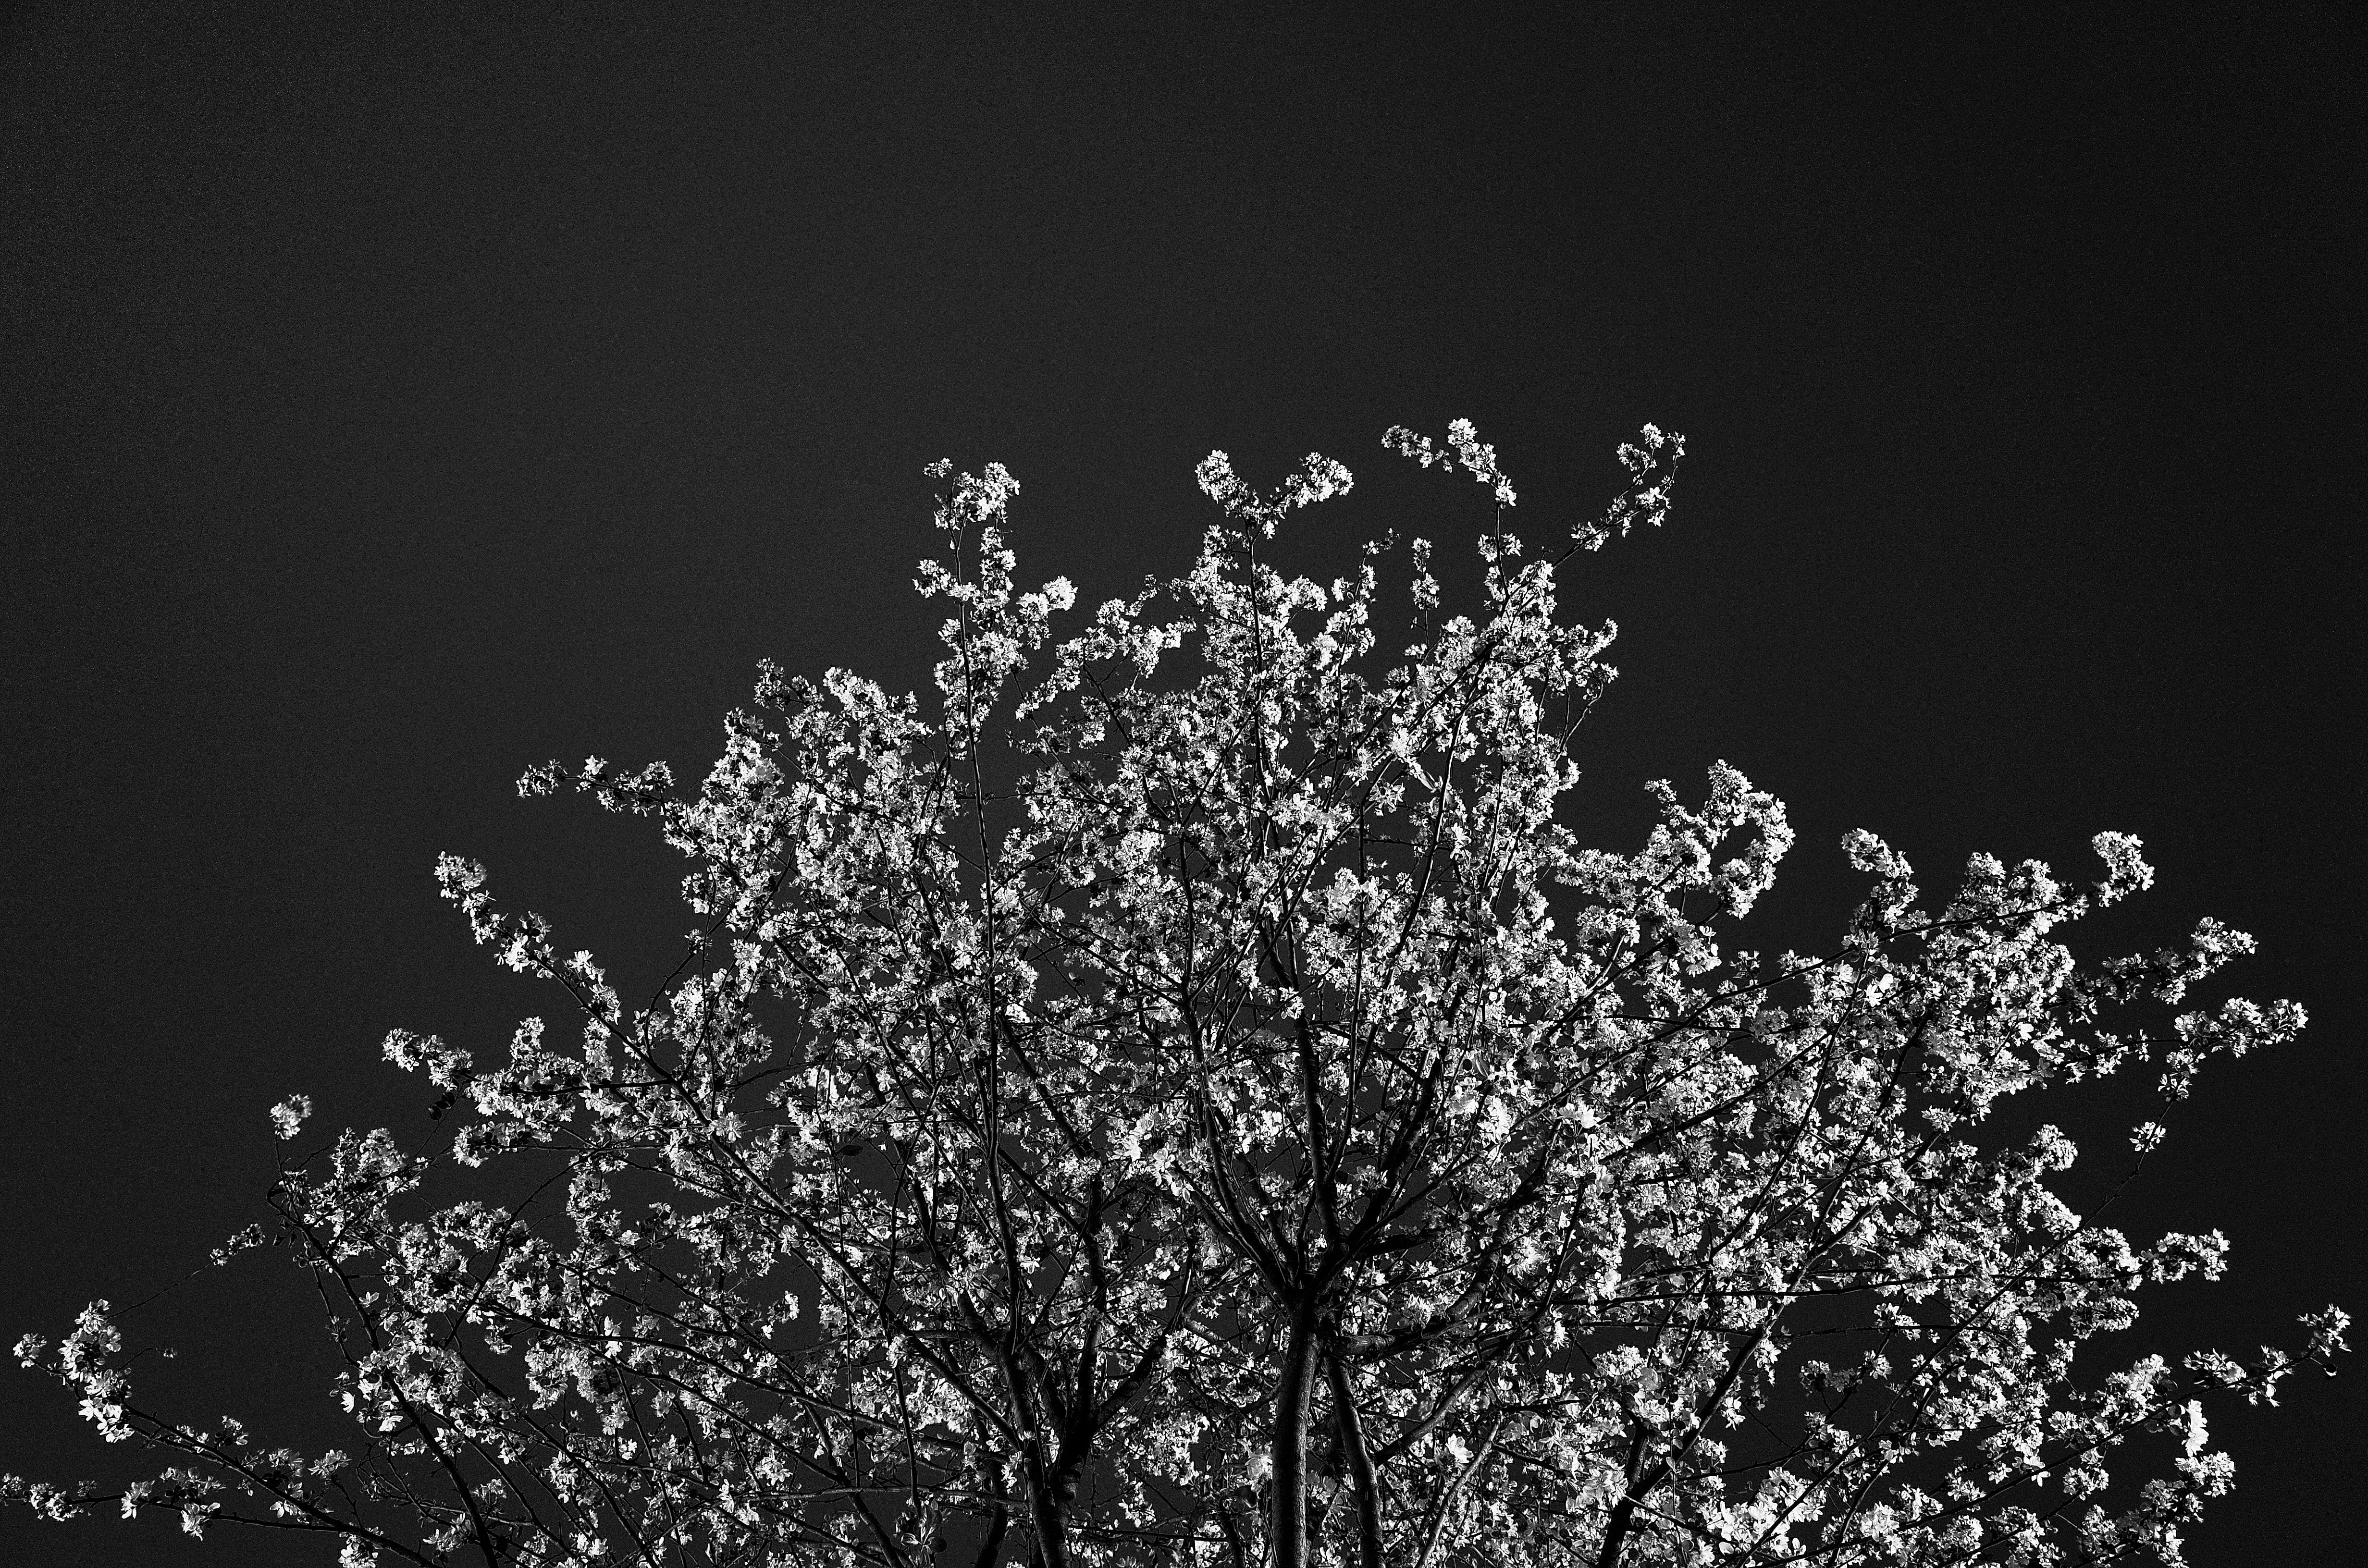 grayscale plant